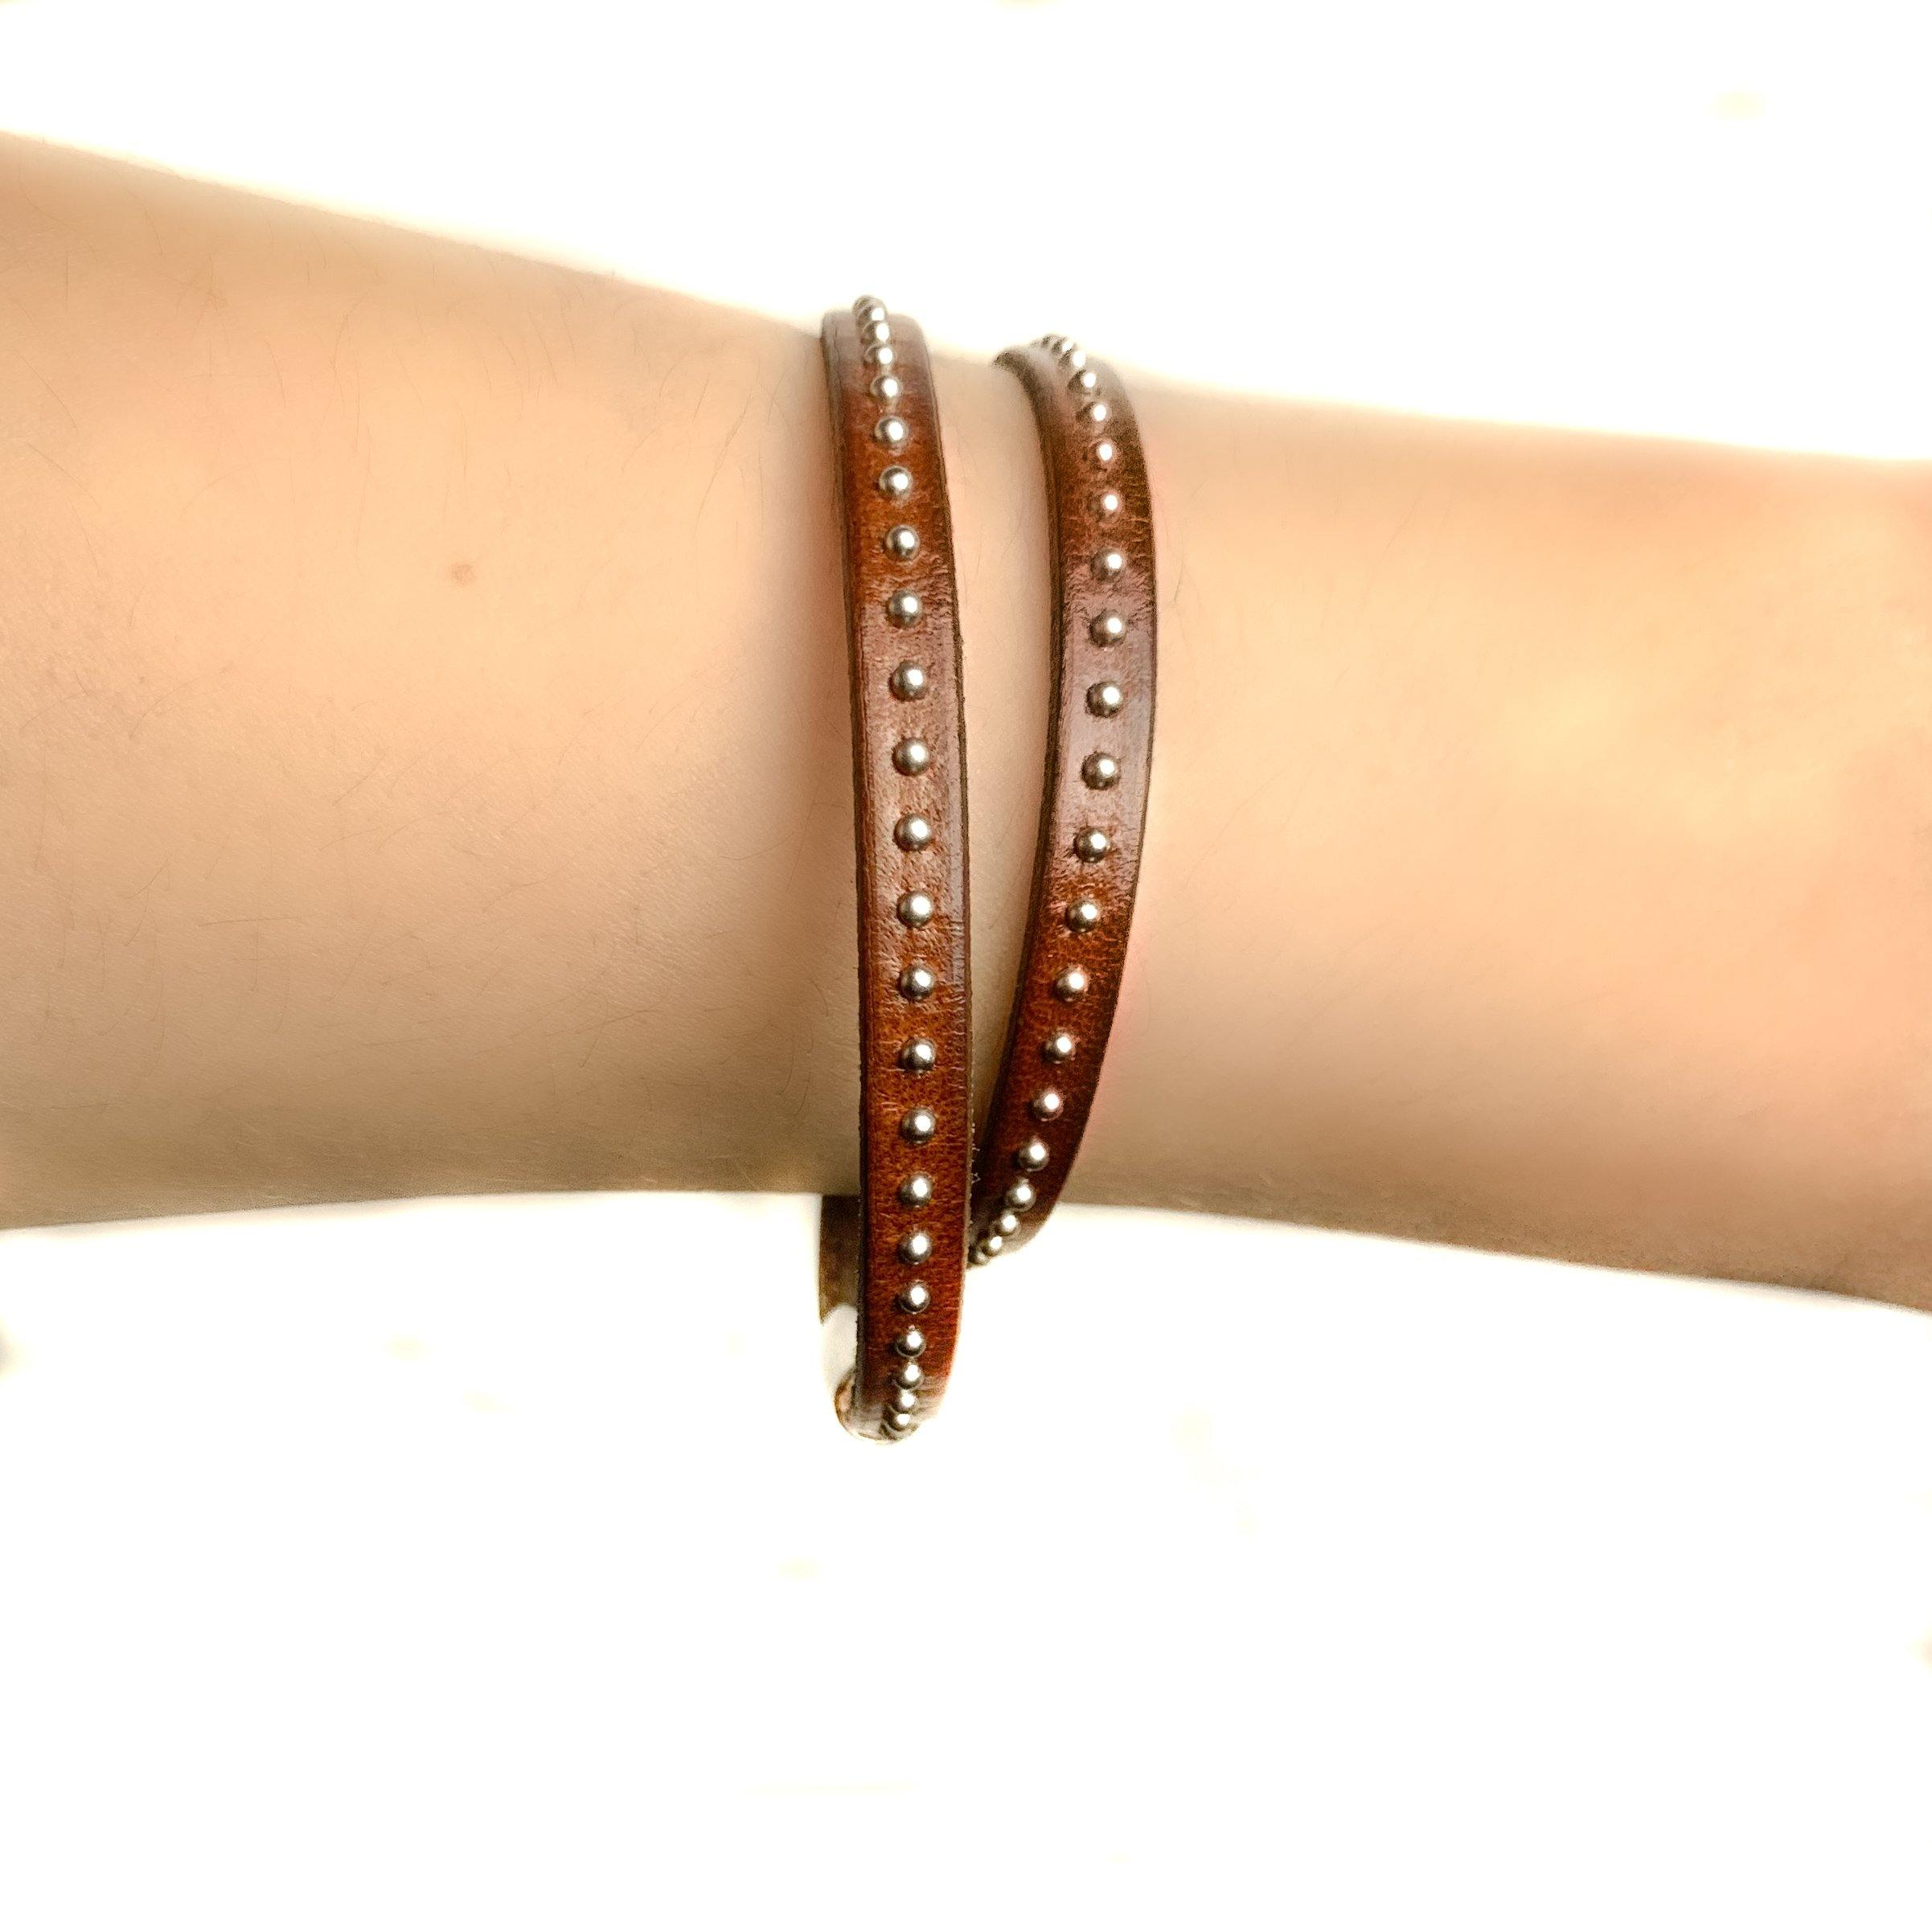 NAPPA LEATHER BRACELET WITH STUDS - 2 ROUND